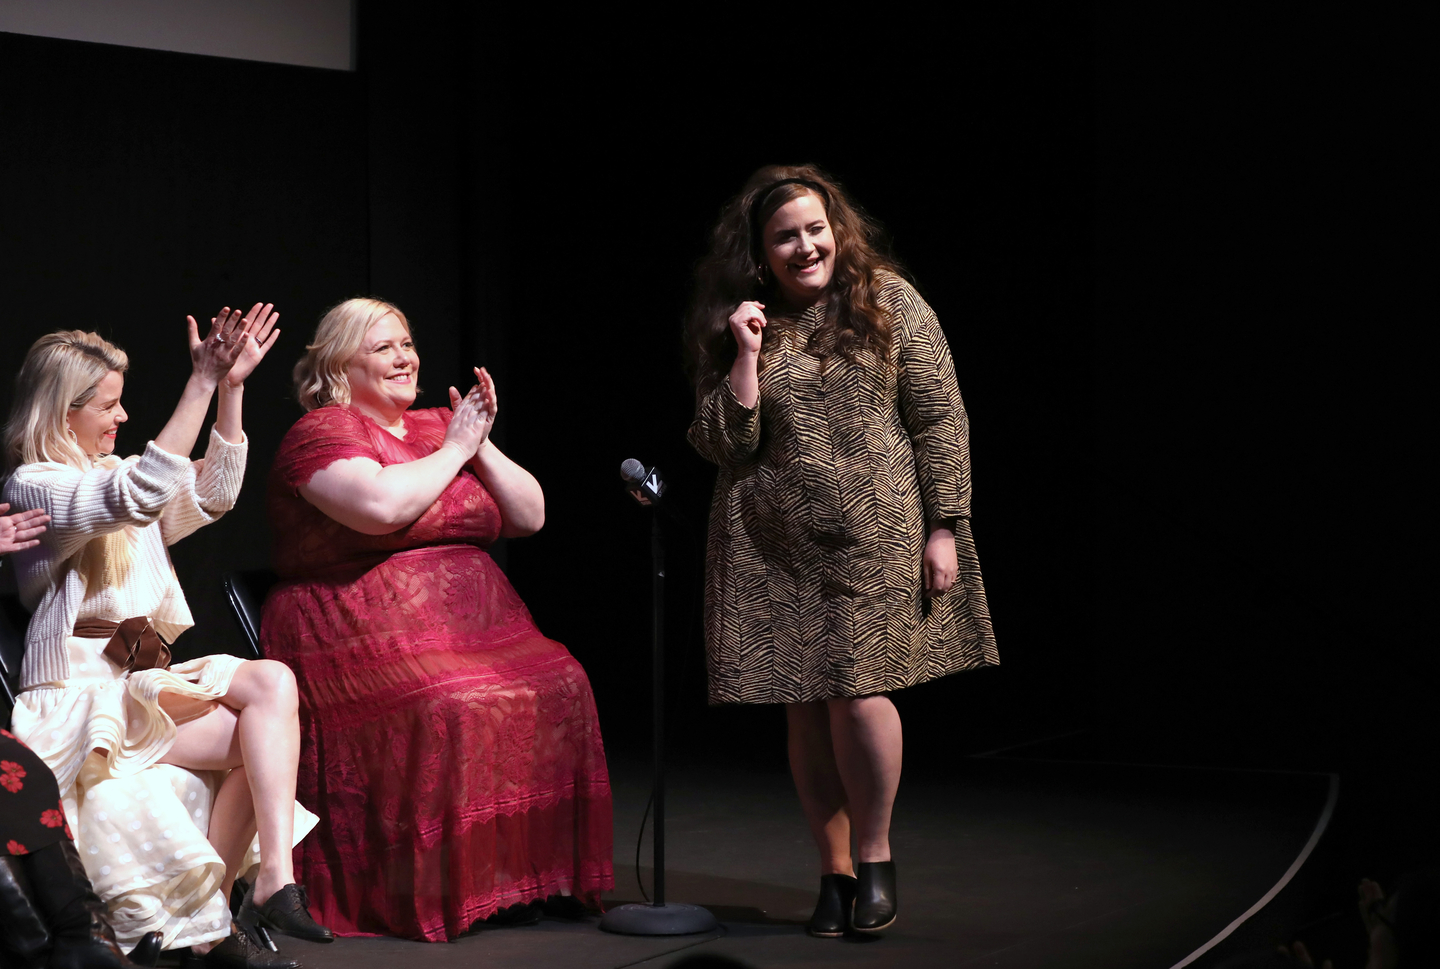 (L-R) Elizabeth Banks, Lindy West, and Aidy Bryant speak onstage at the Shrill premiere at the Stateside Theatre. Photo by Sean Mathis/Getty Images for SXSW